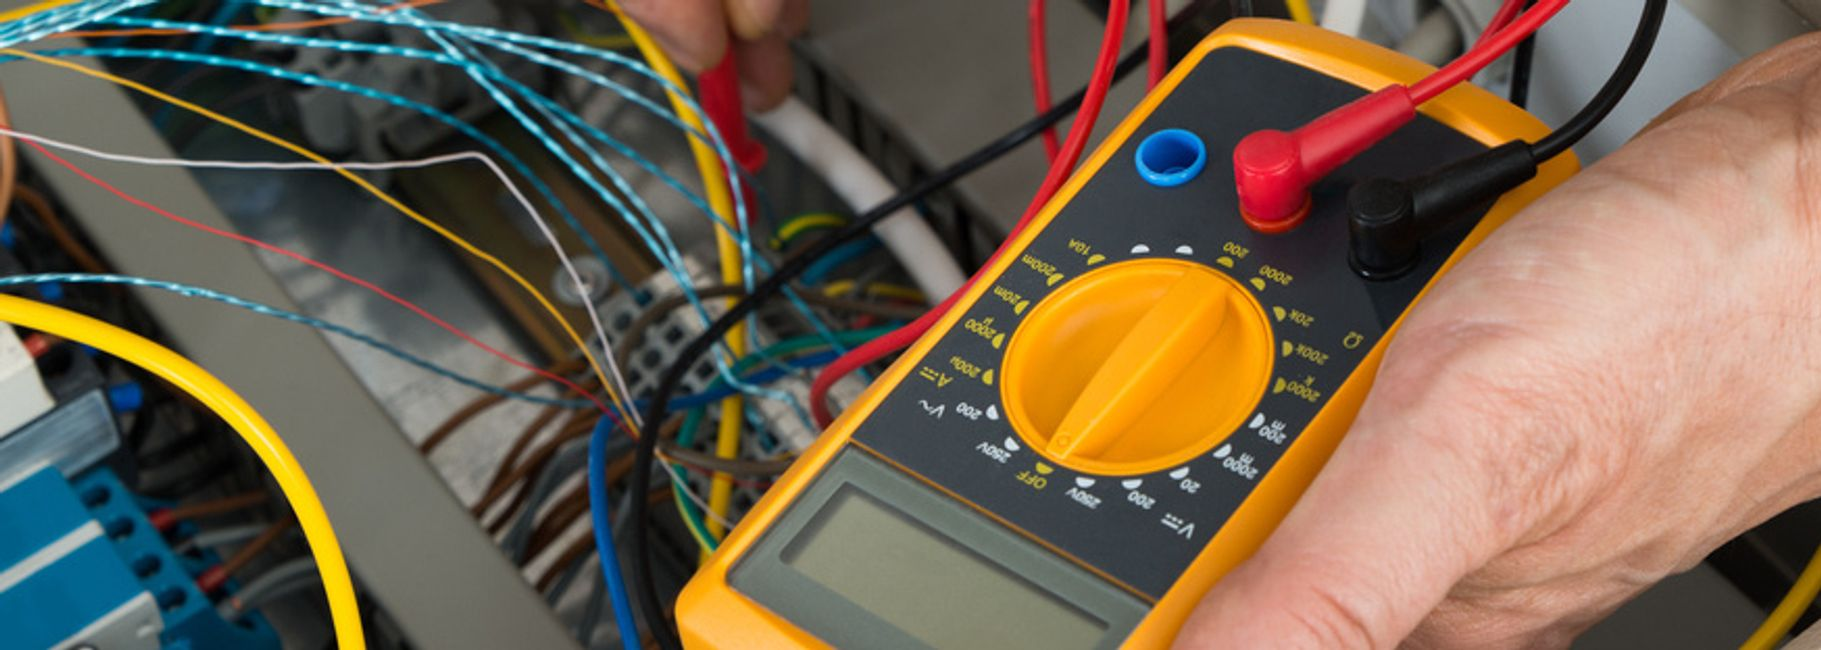 How To Test Electrical Circuits Testing 999 Electrician A Circuit Board